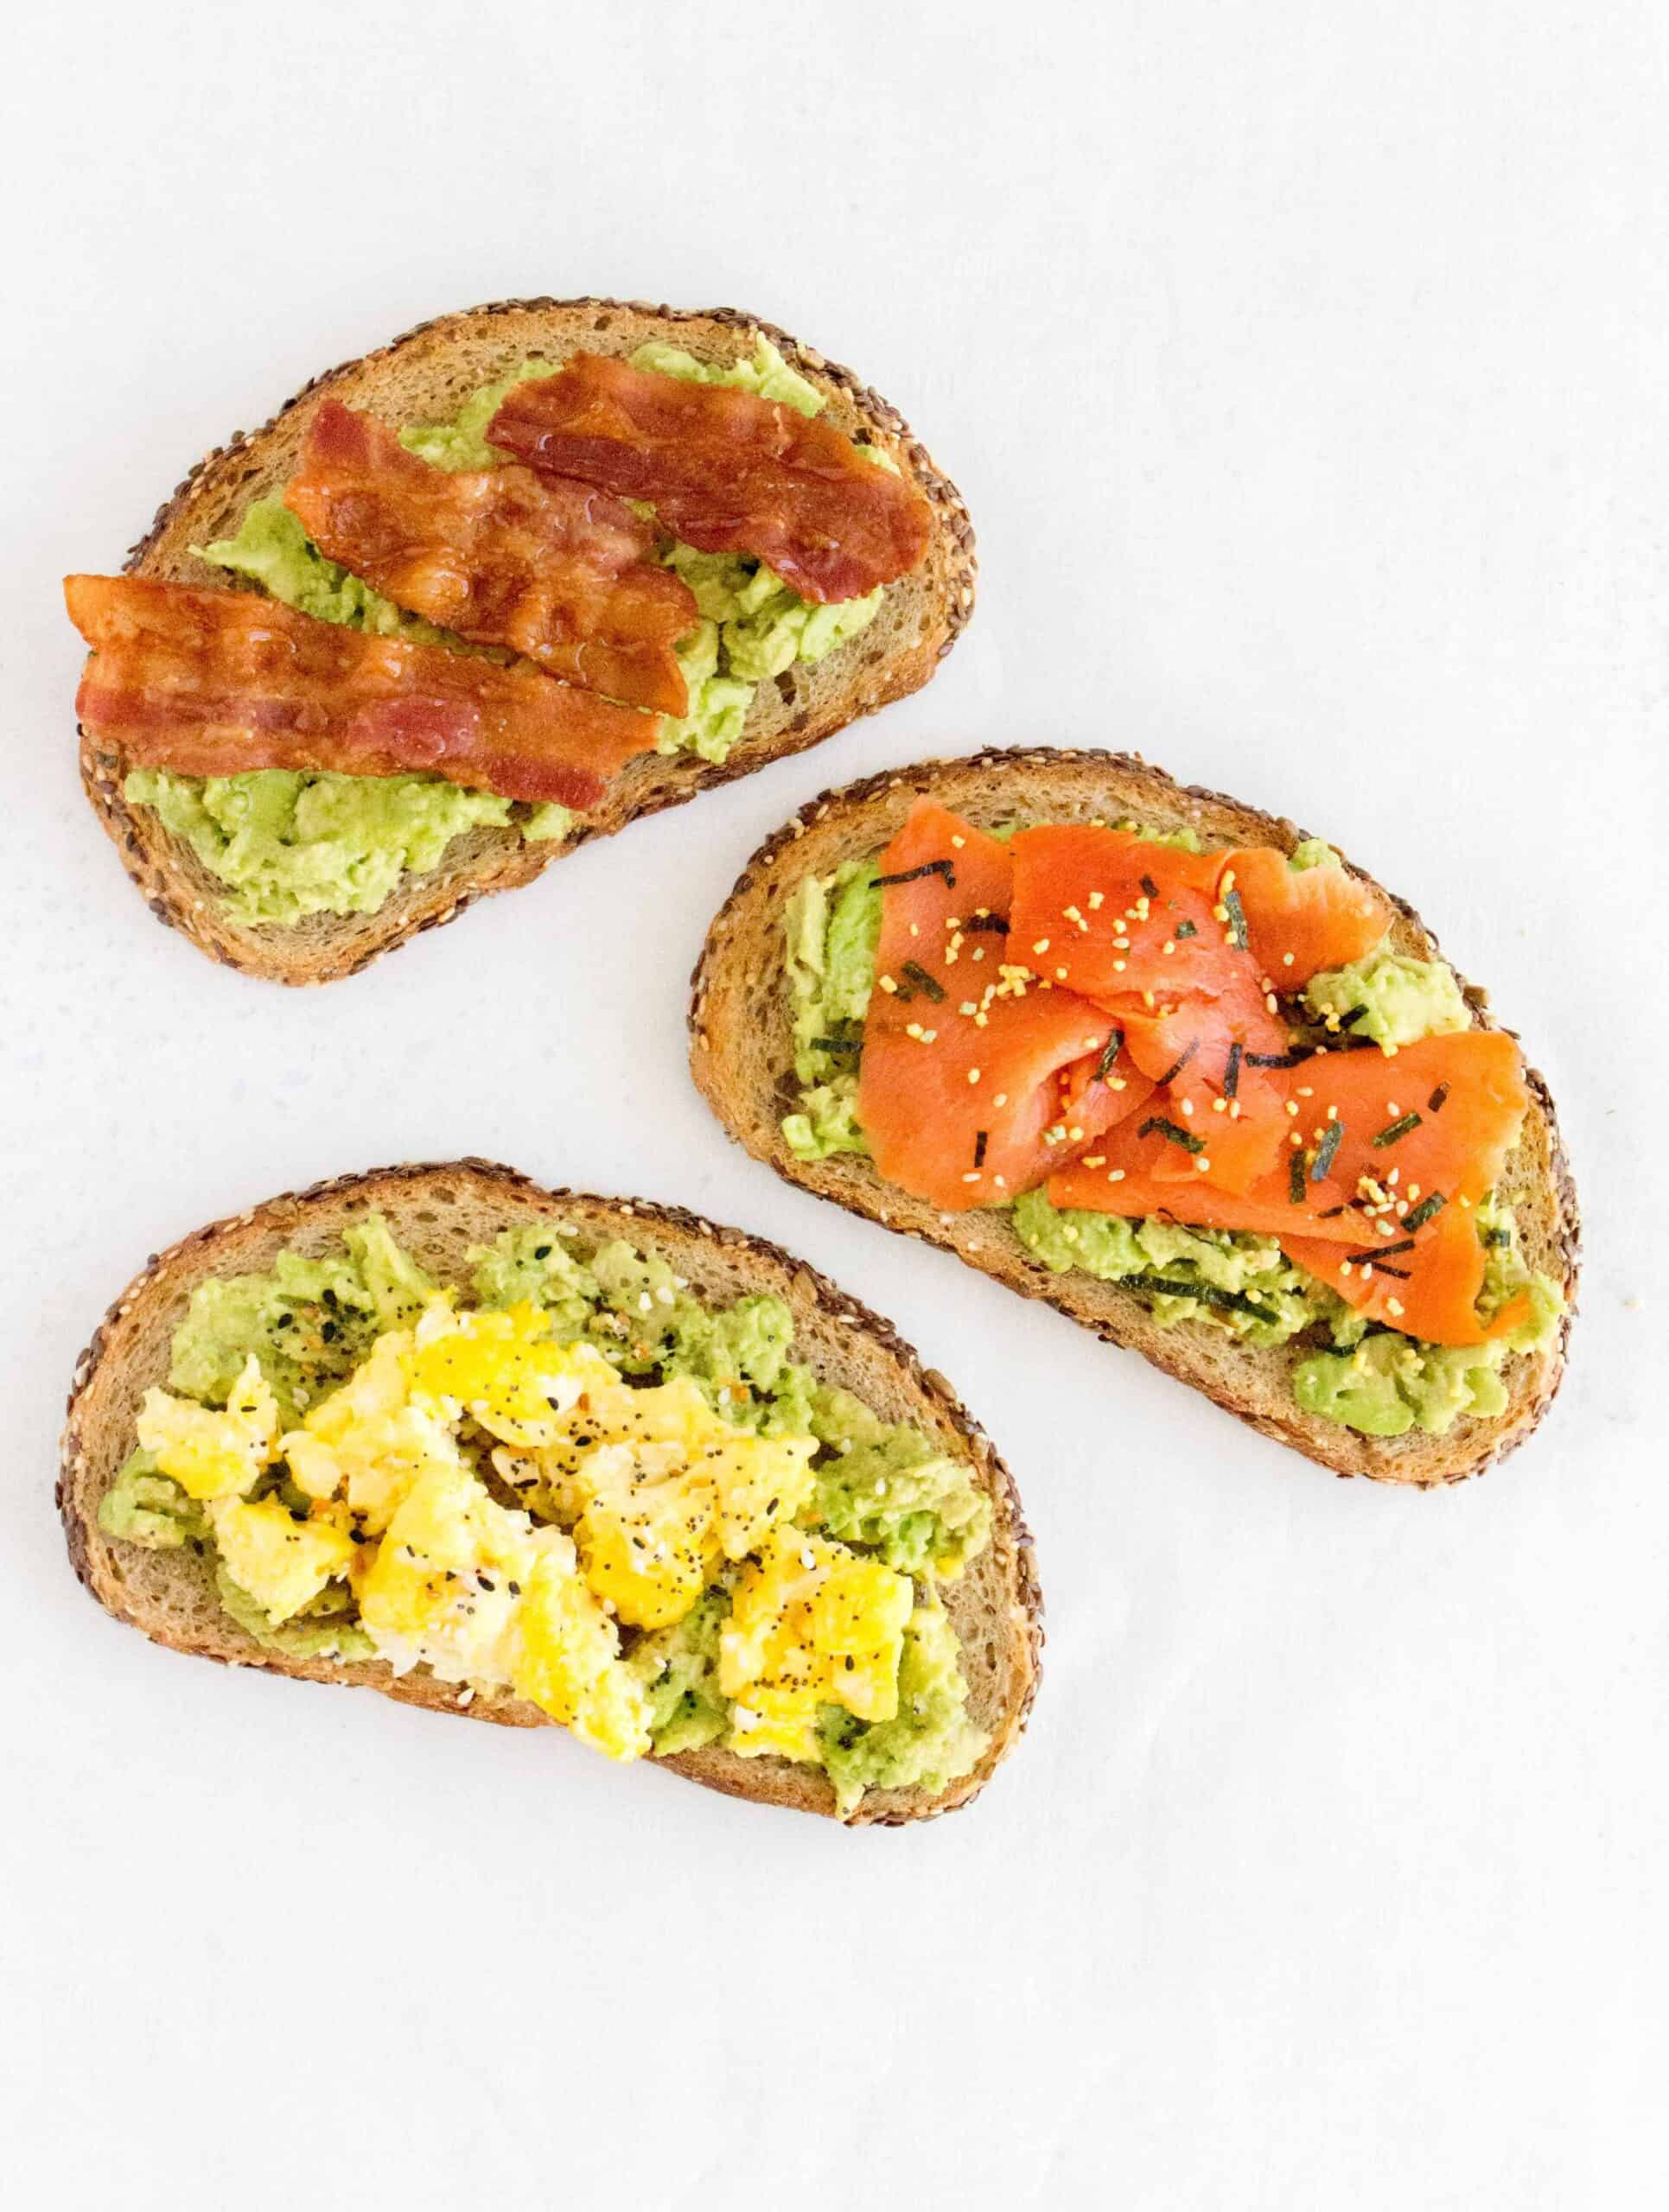 Quick and easy, here are three fun and delicious ways to mix up your avocado toast!